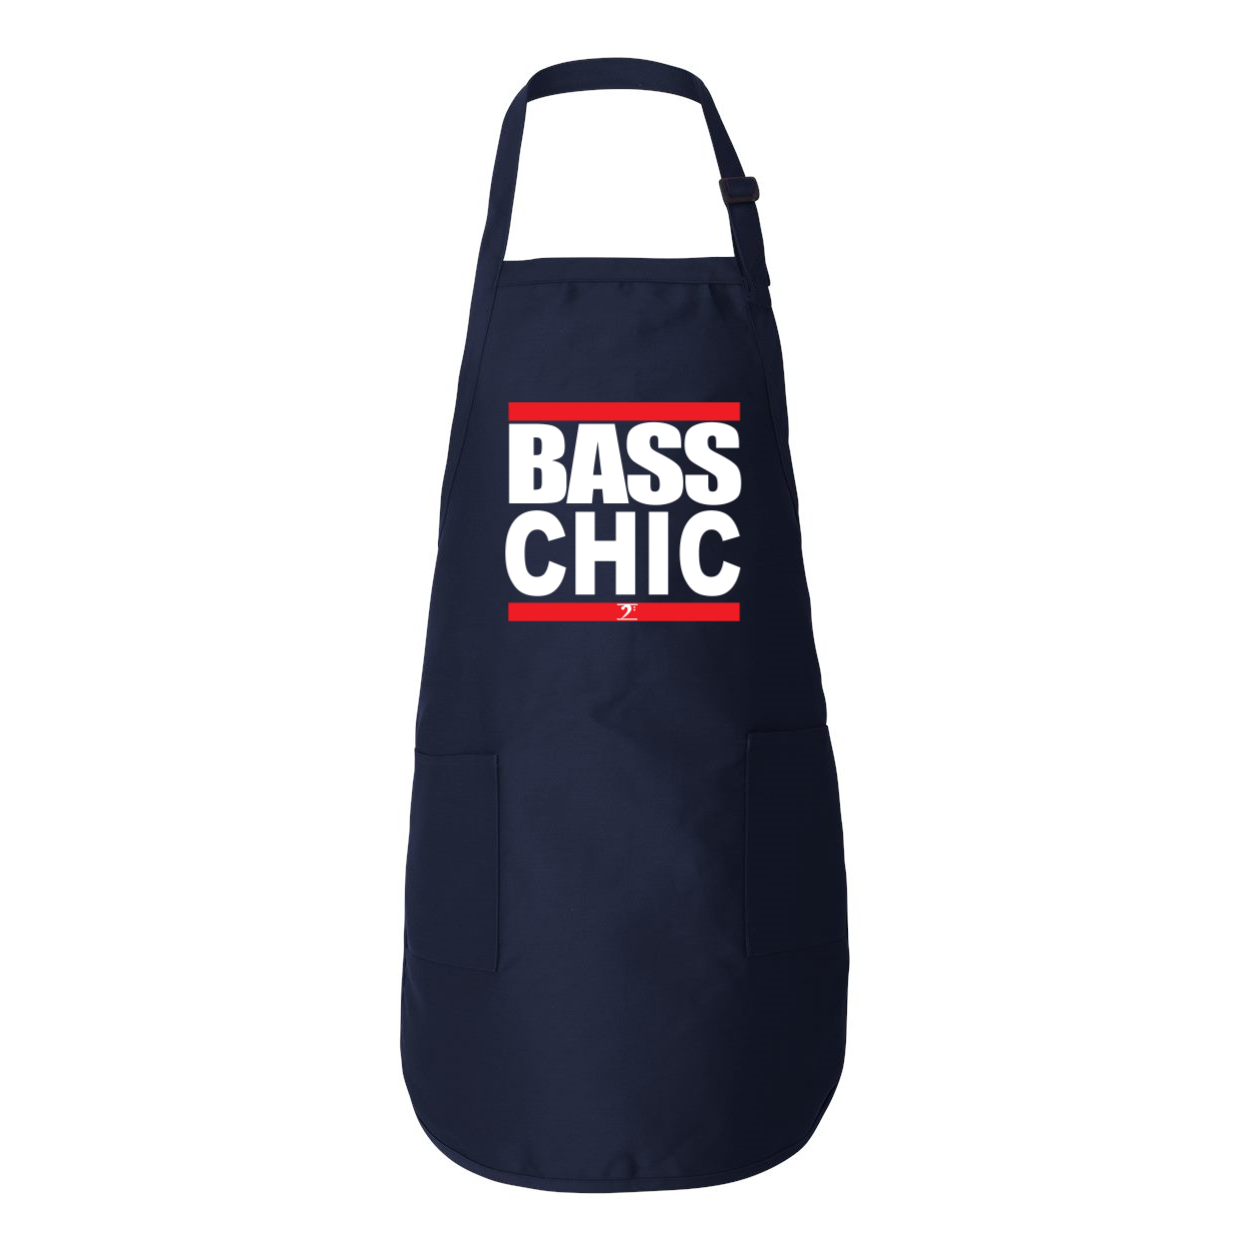 BASS CHIC Full-Length Apron with Pockets - Lathon Bass Wear